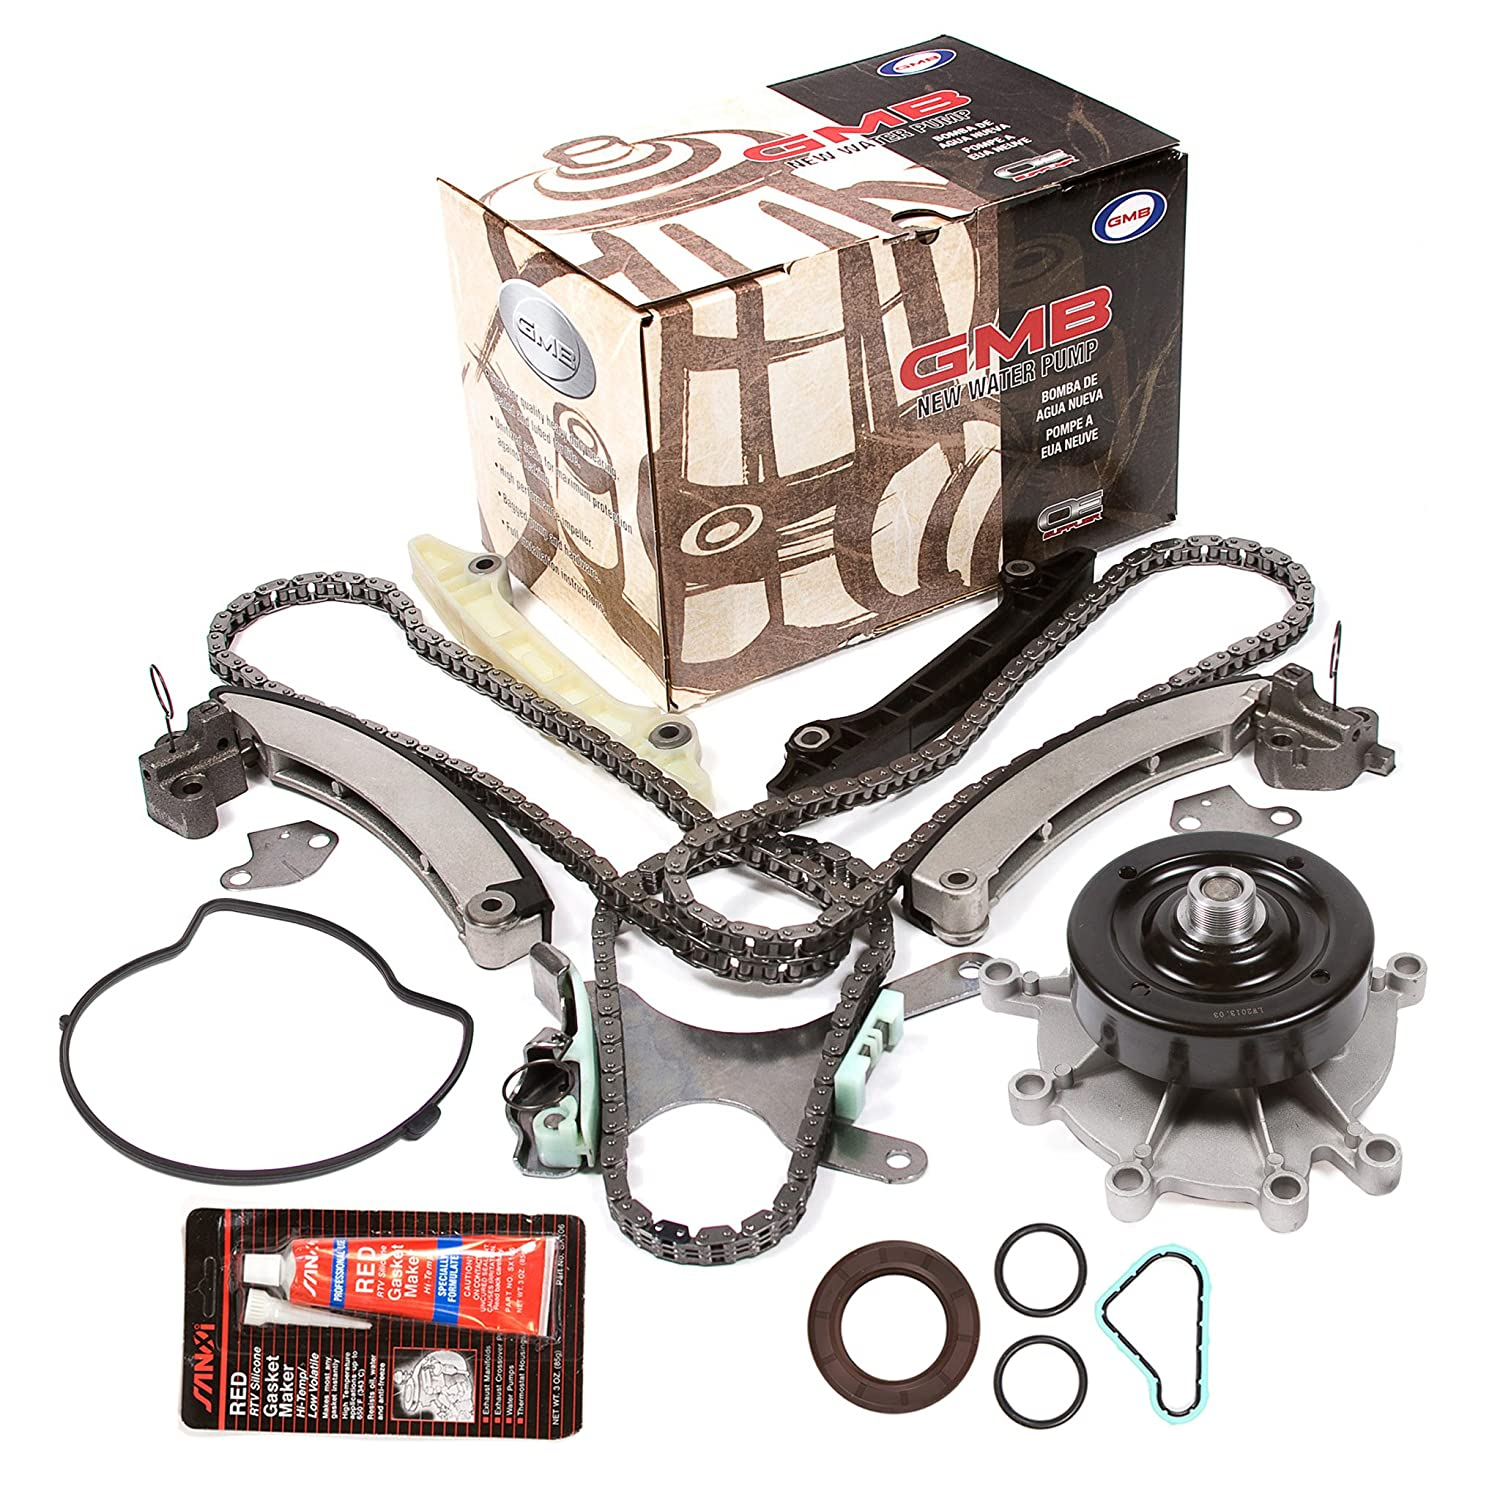 Evergreen TKTCS5037NGWP 02-11 Jeep Dodge Mitsubishi 3.7L Timing Chain Kit Water Pump (without Gears) Timing Cover Gasket Evergreen Parts And Components